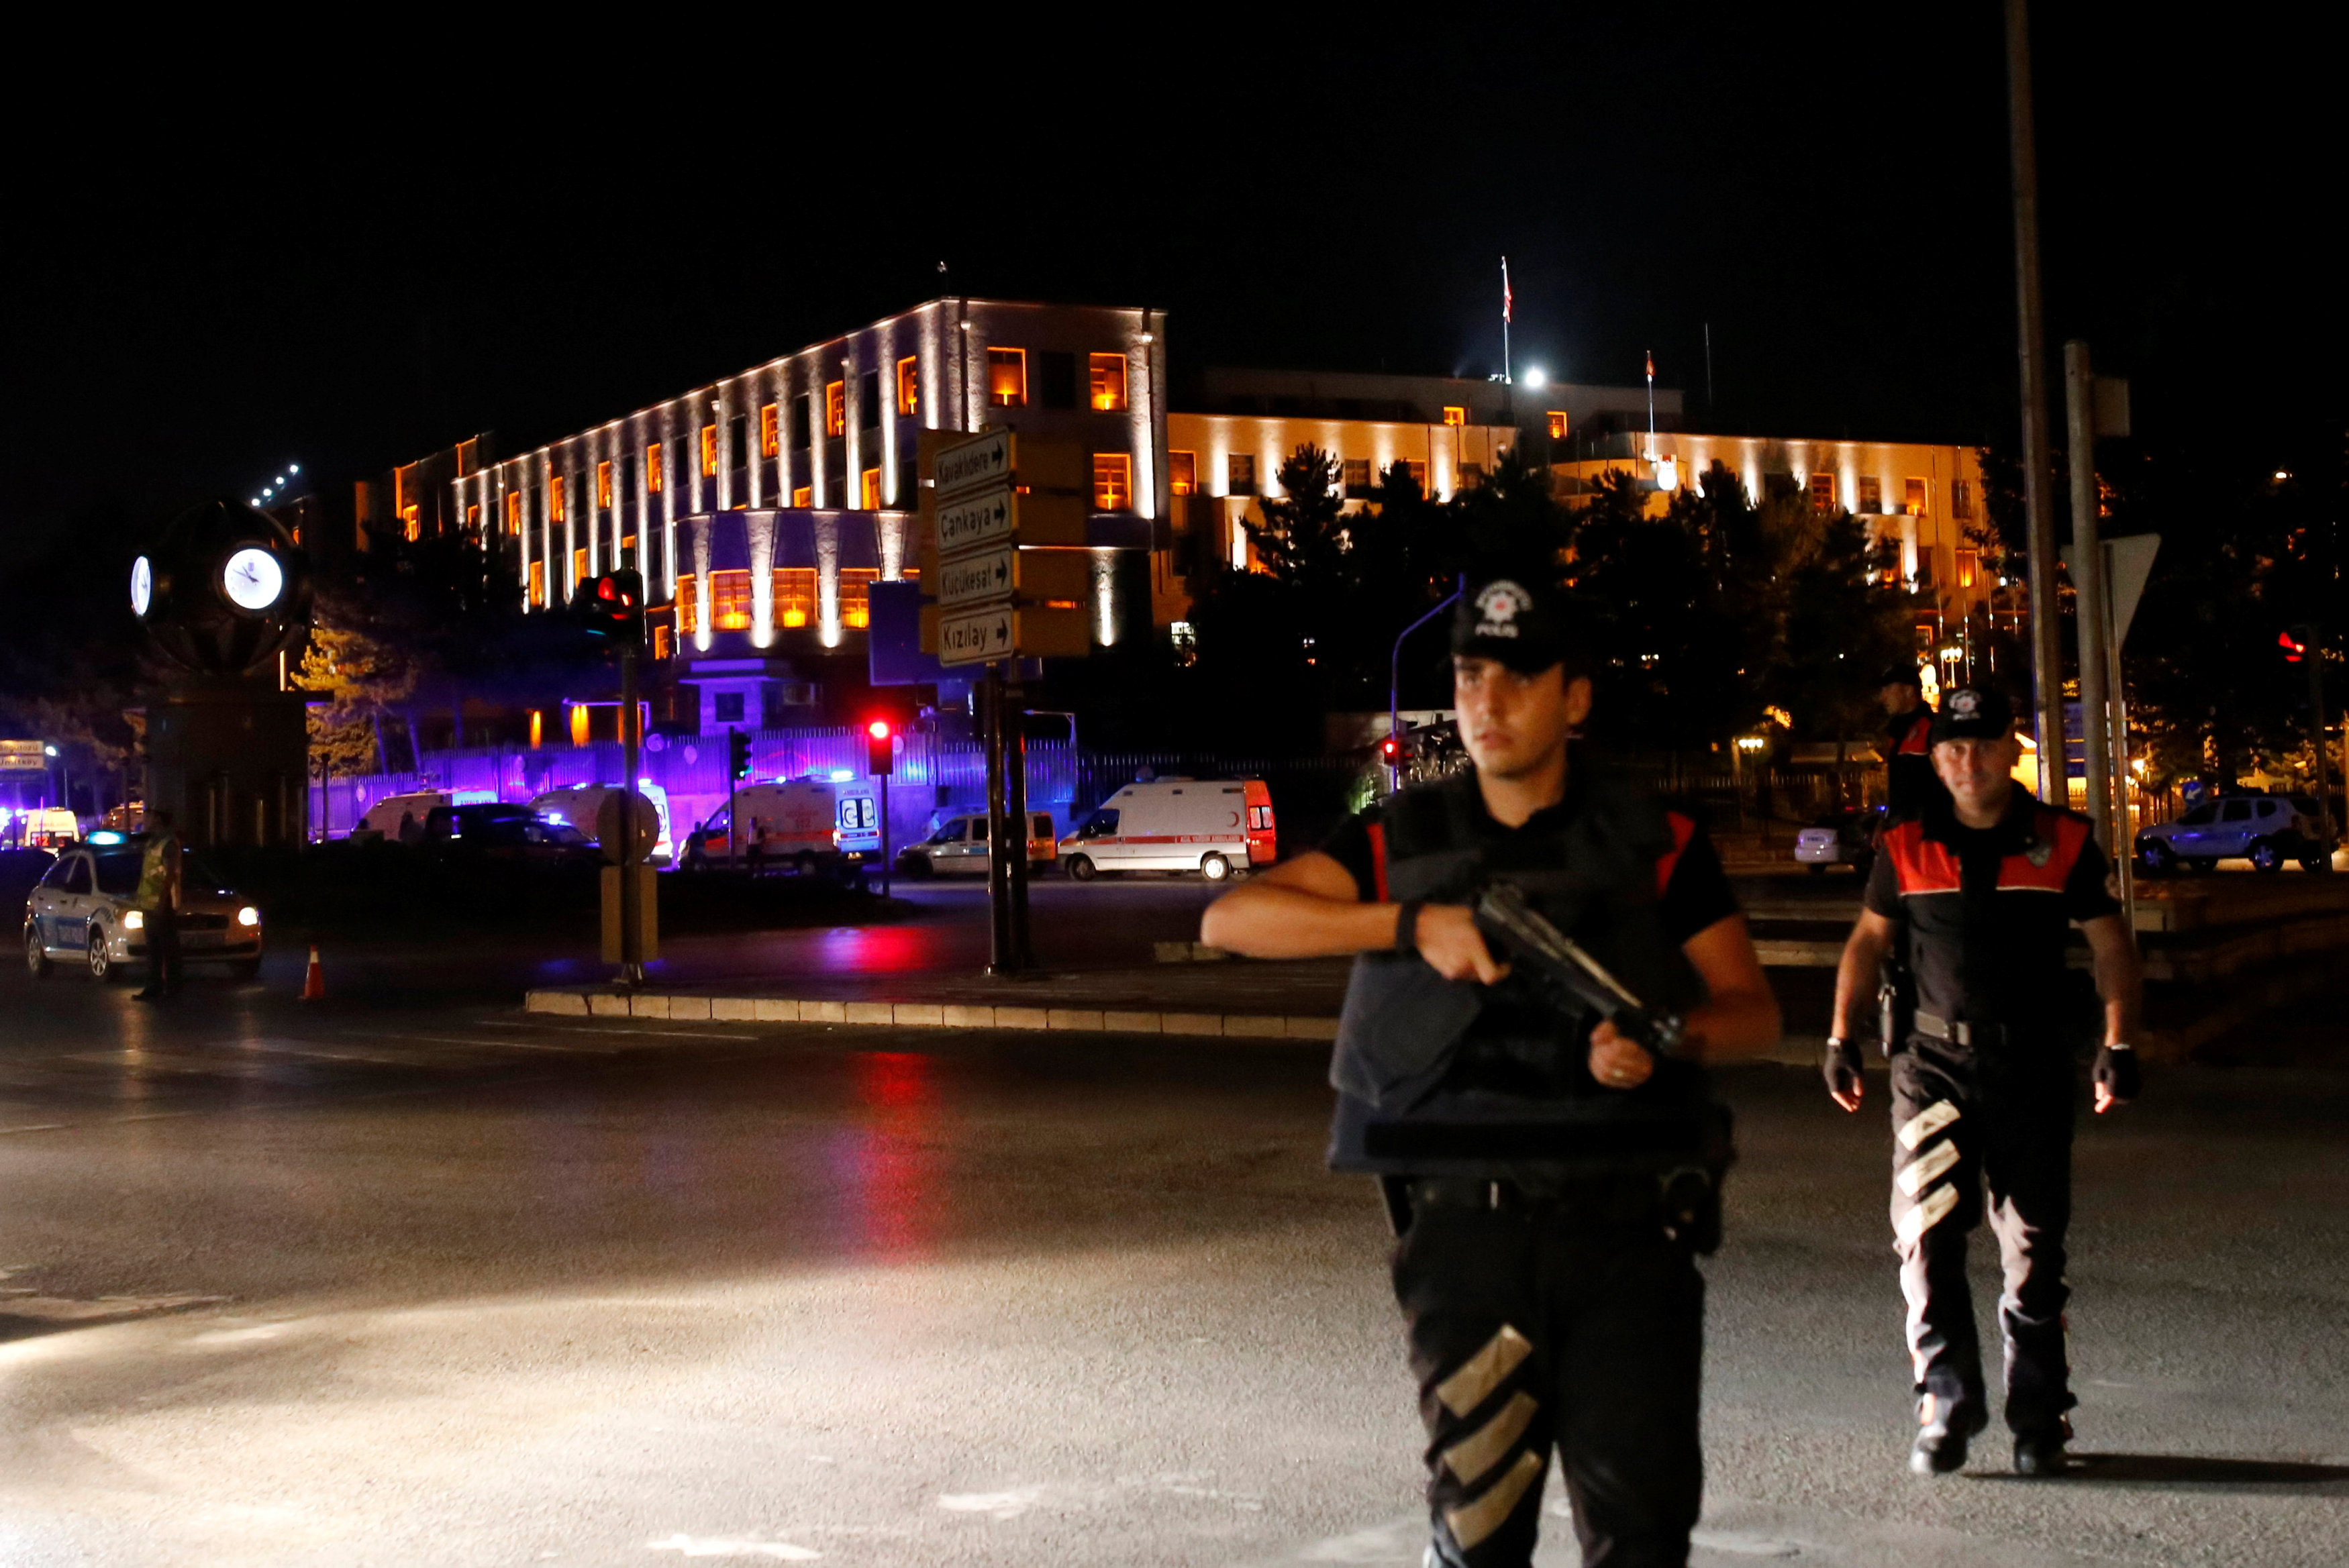 Turkey says ISIS plot to attack Adana US consulate thwarted ...